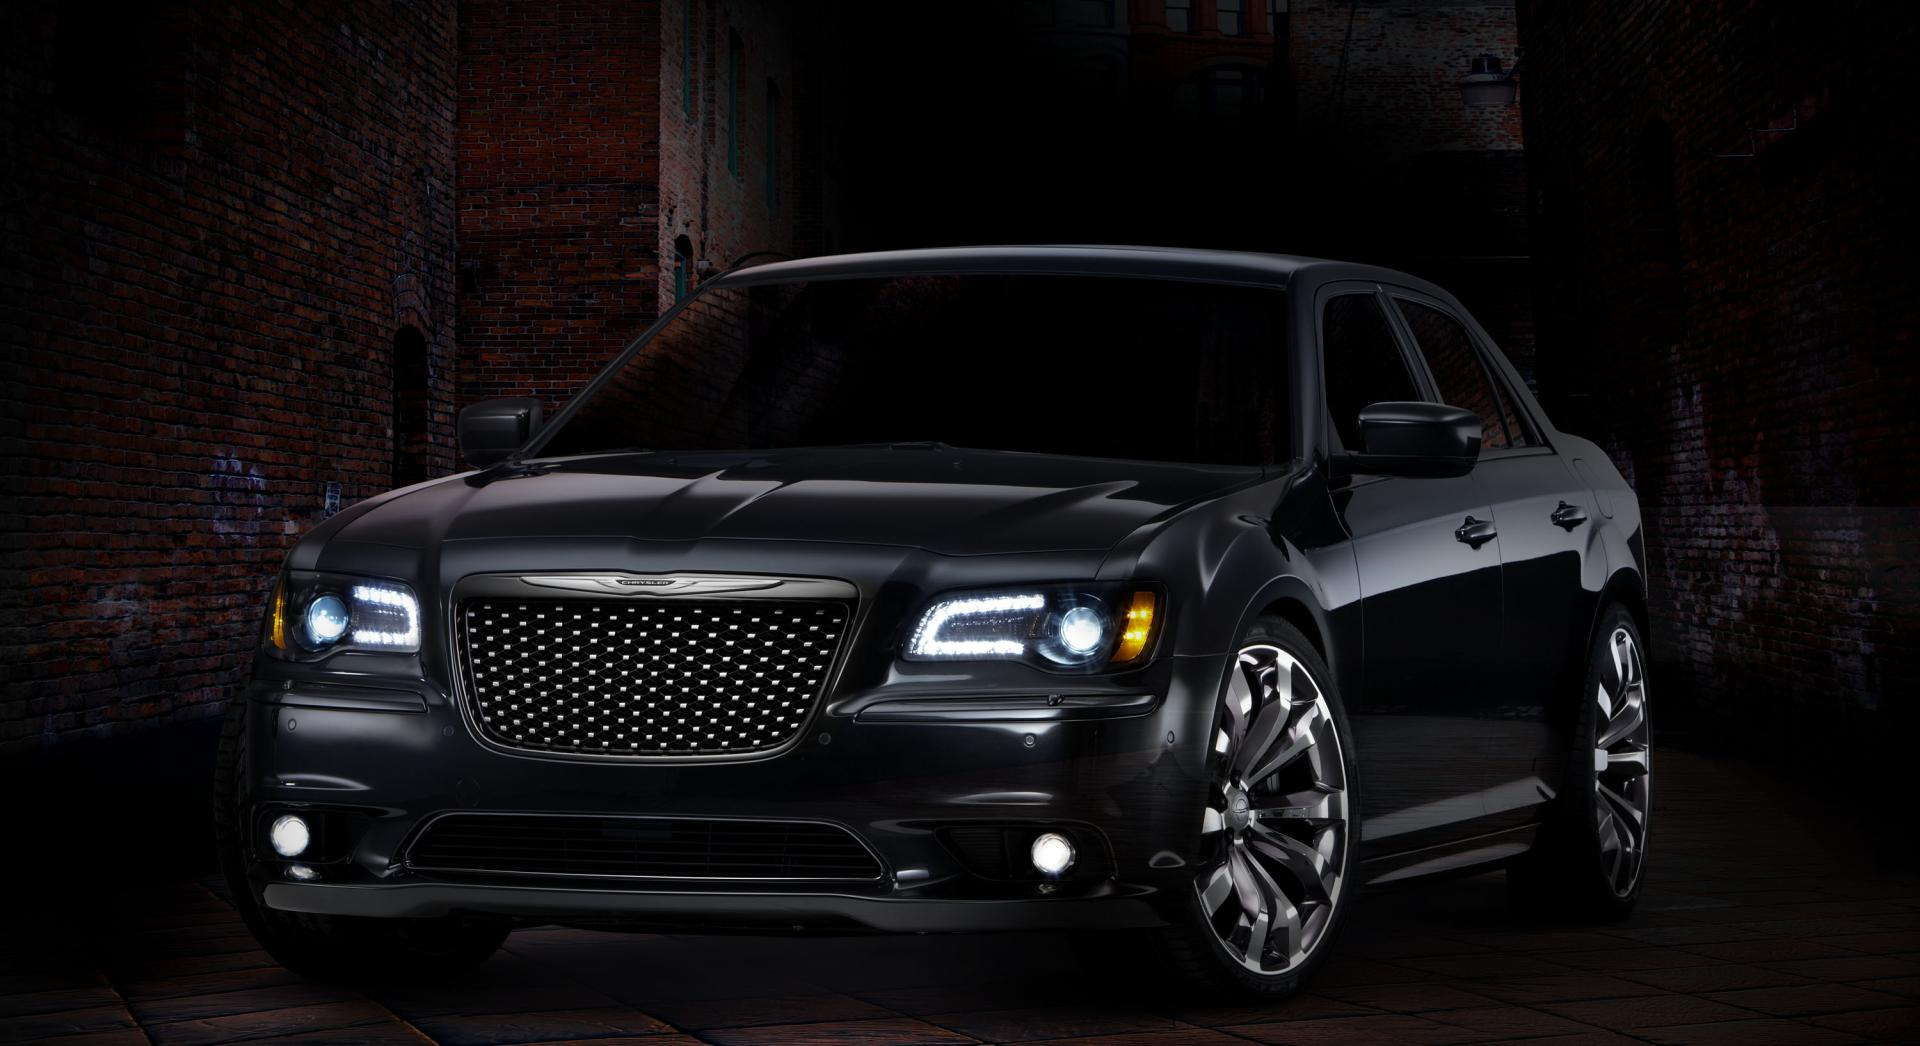 2012 chrysler 300 ruyi design concept pictures news research pricing. Black Bedroom Furniture Sets. Home Design Ideas